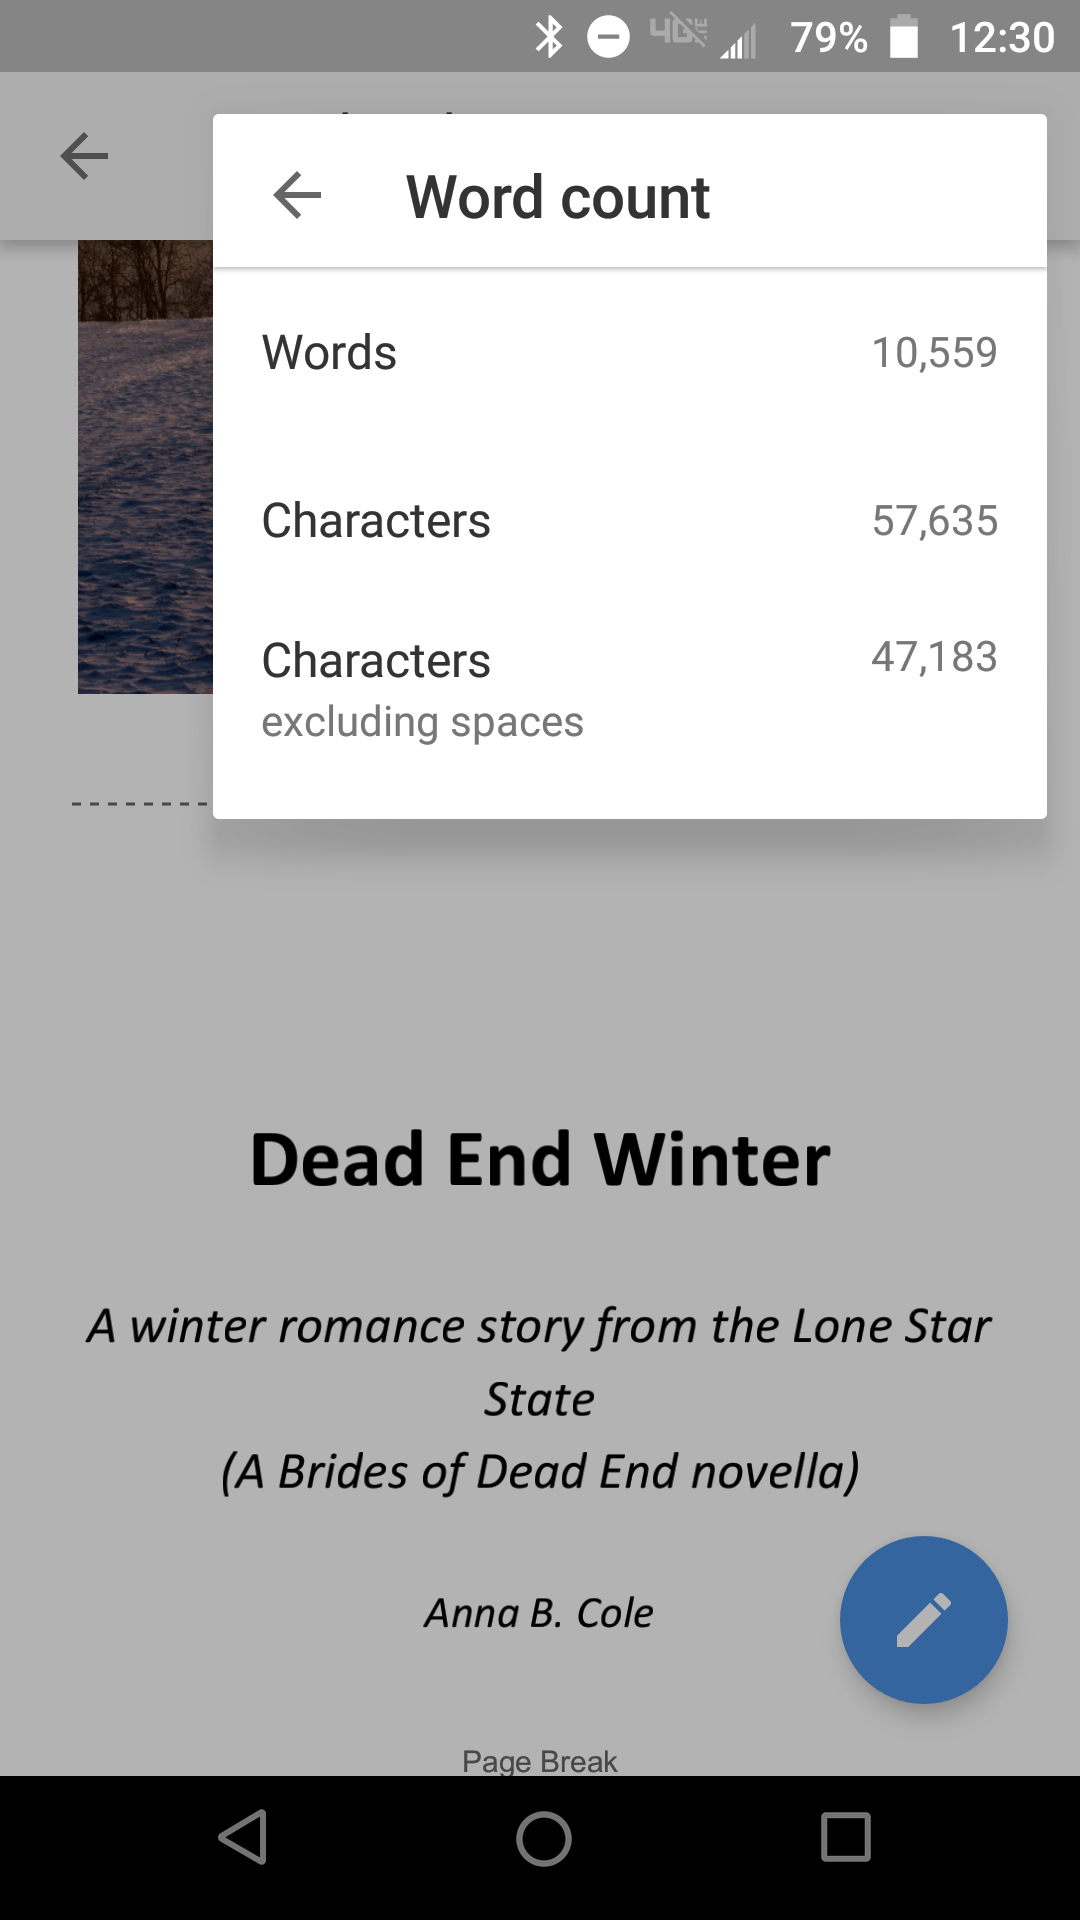 Anna_B_Cole word count img